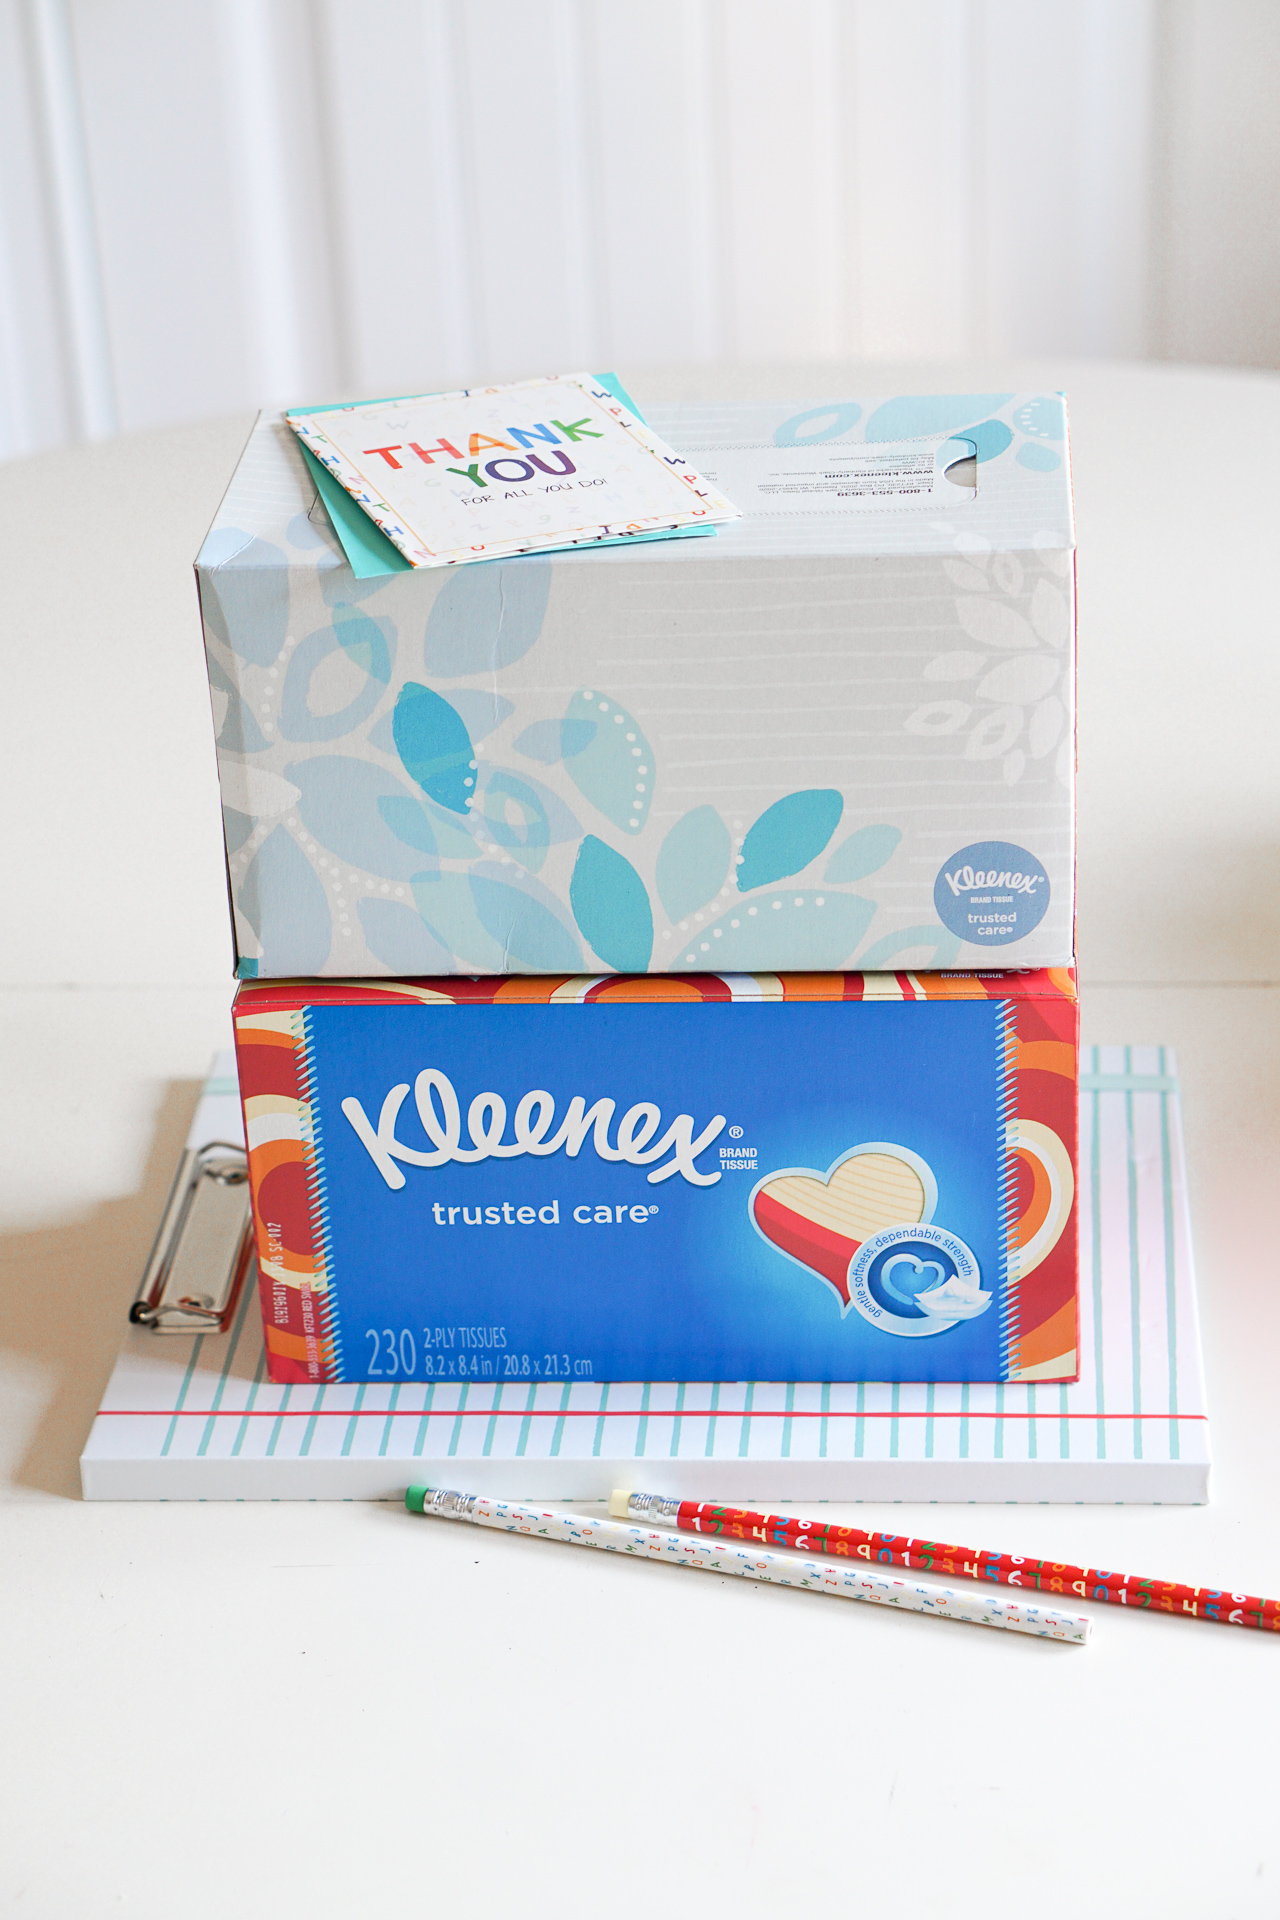 Back to School Supplies - How to be a Classroom Hero This School Year